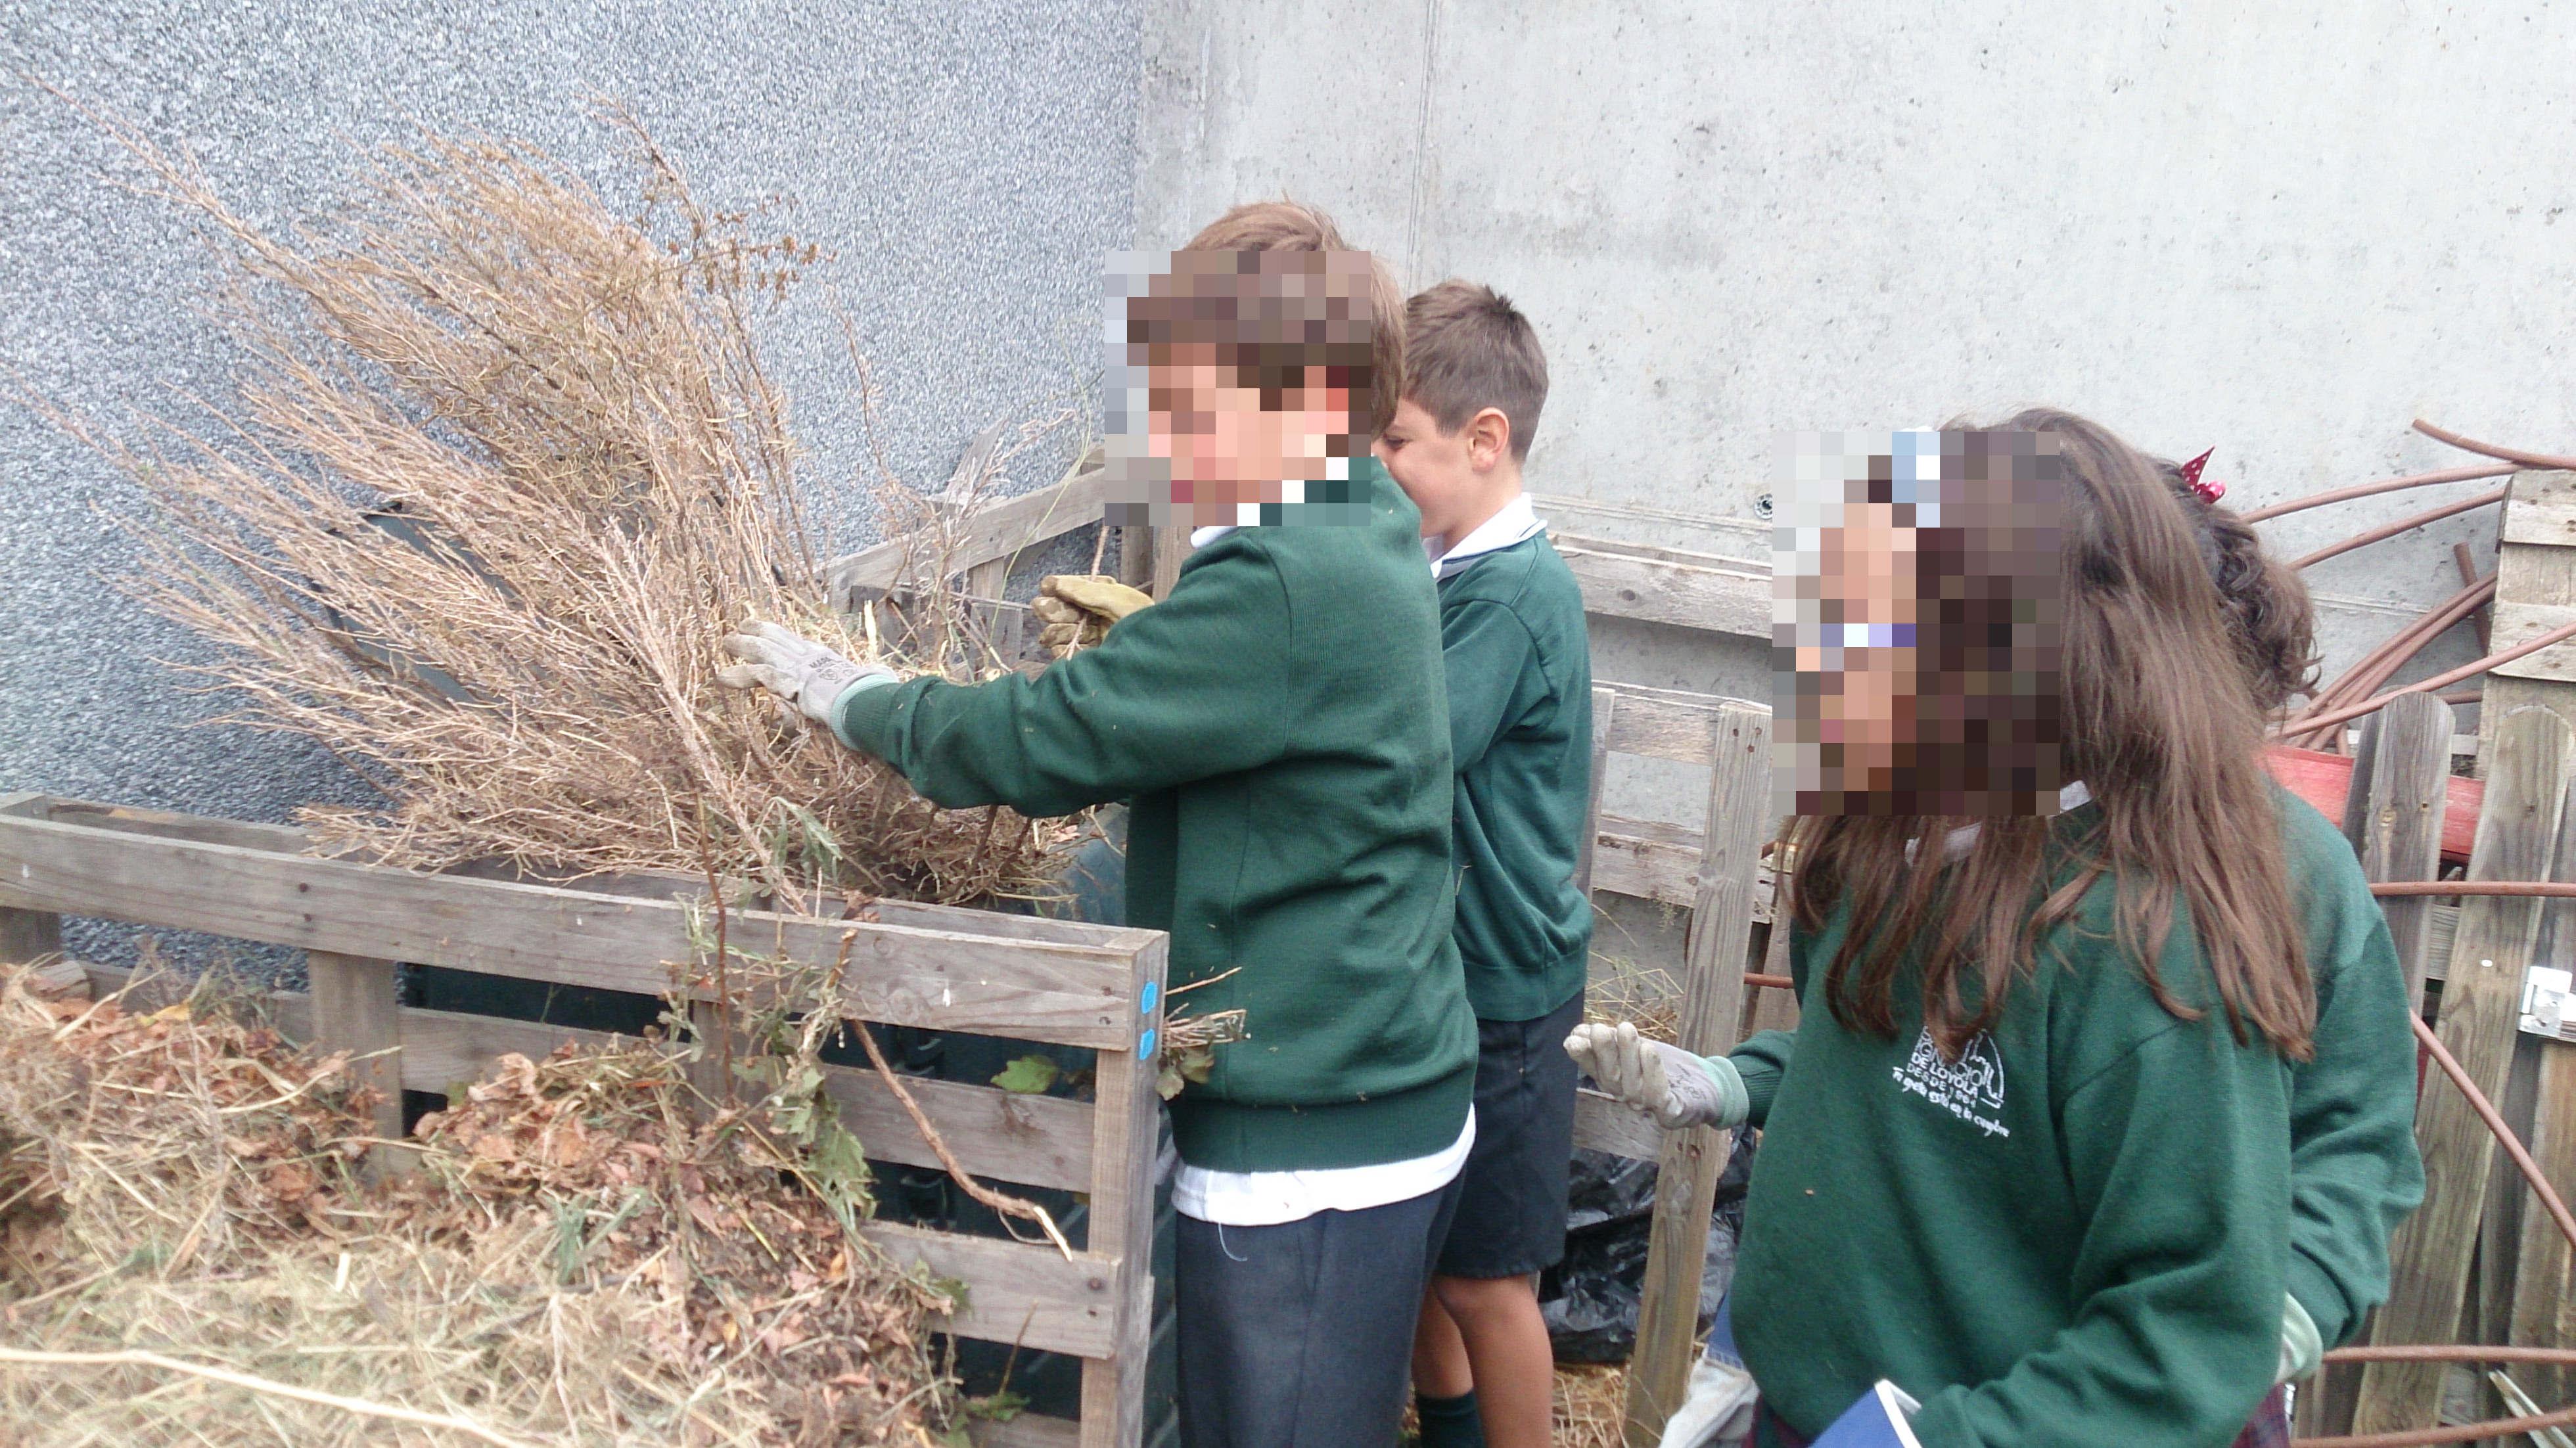 Equipo compost